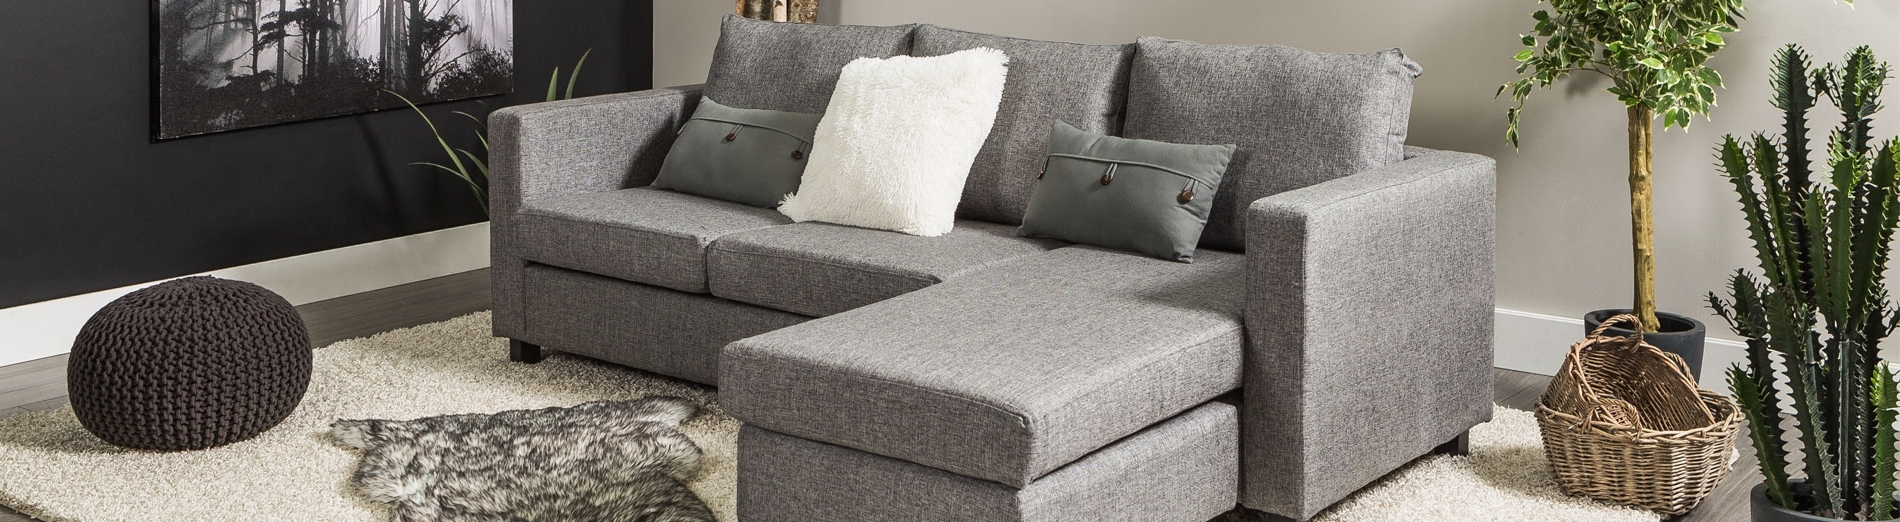 Most Recent Kitchener Sectional Sofas In Sofas & Sofabeds & Futons (View 14 of 20)